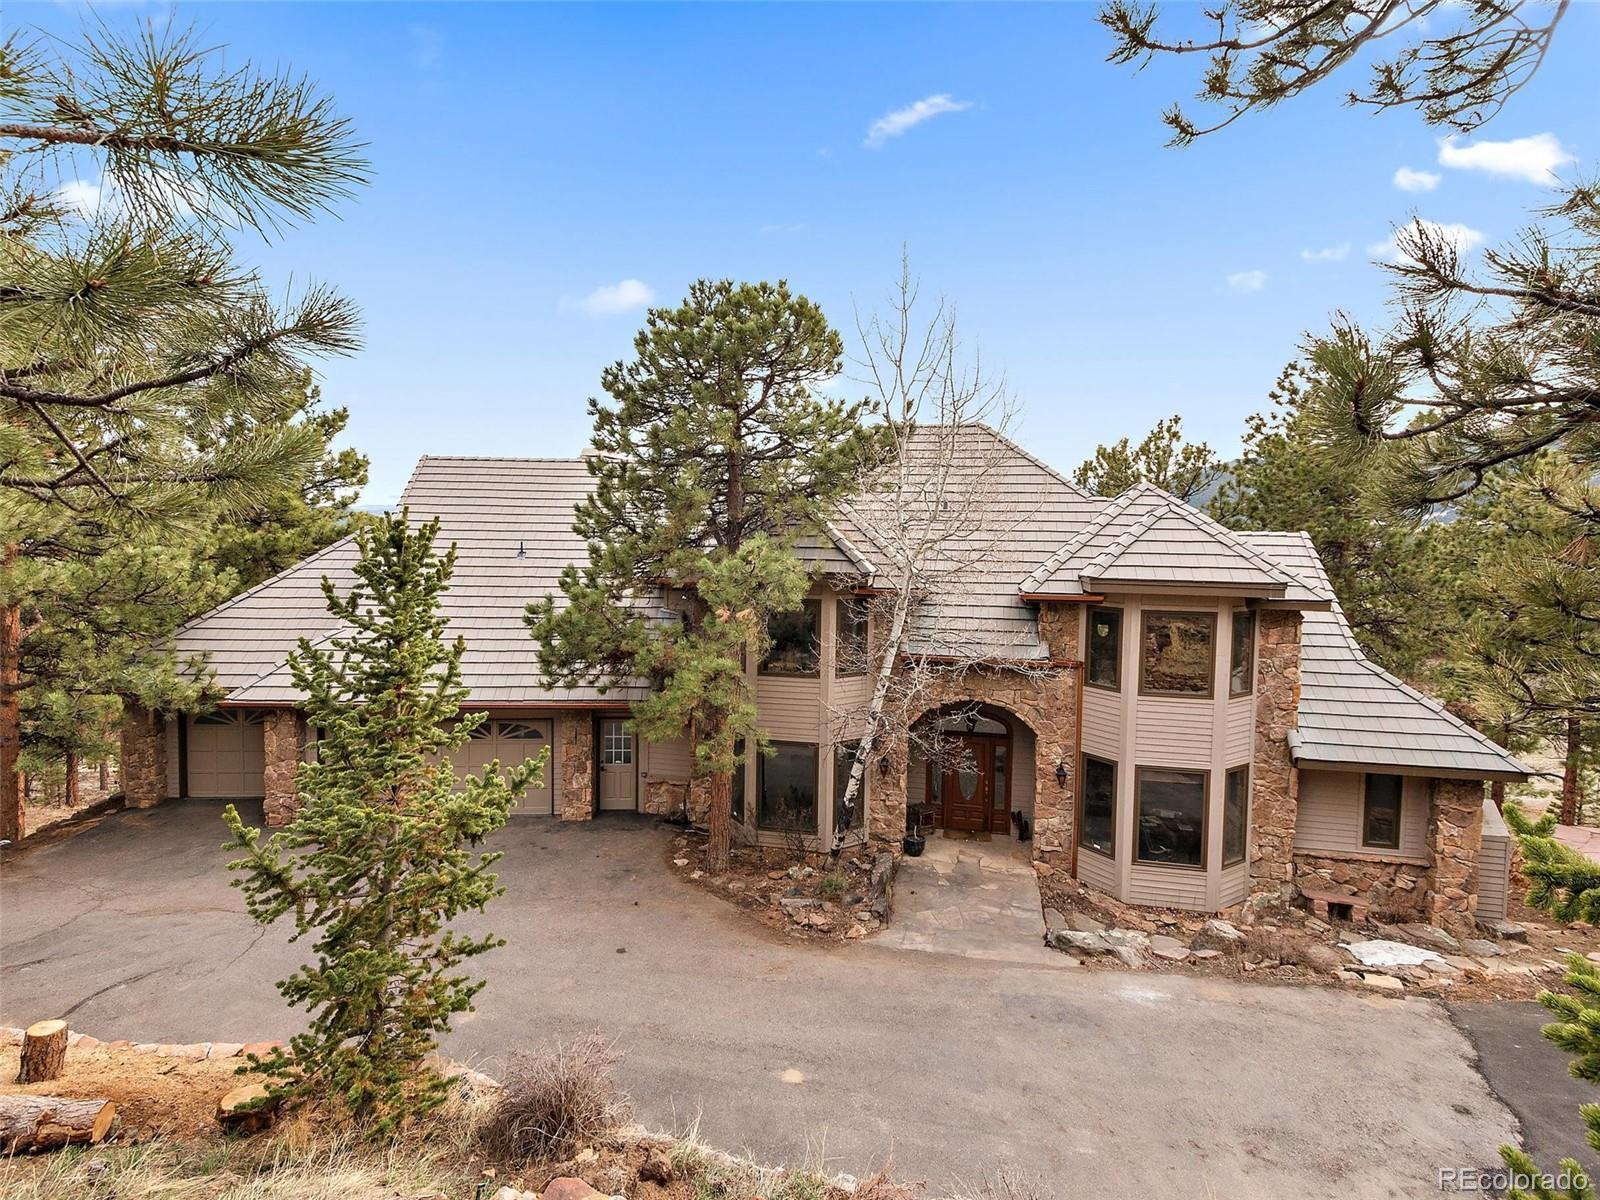 30546 Snowbird Lane, Evergreen, CO 80439 - #: 6201625